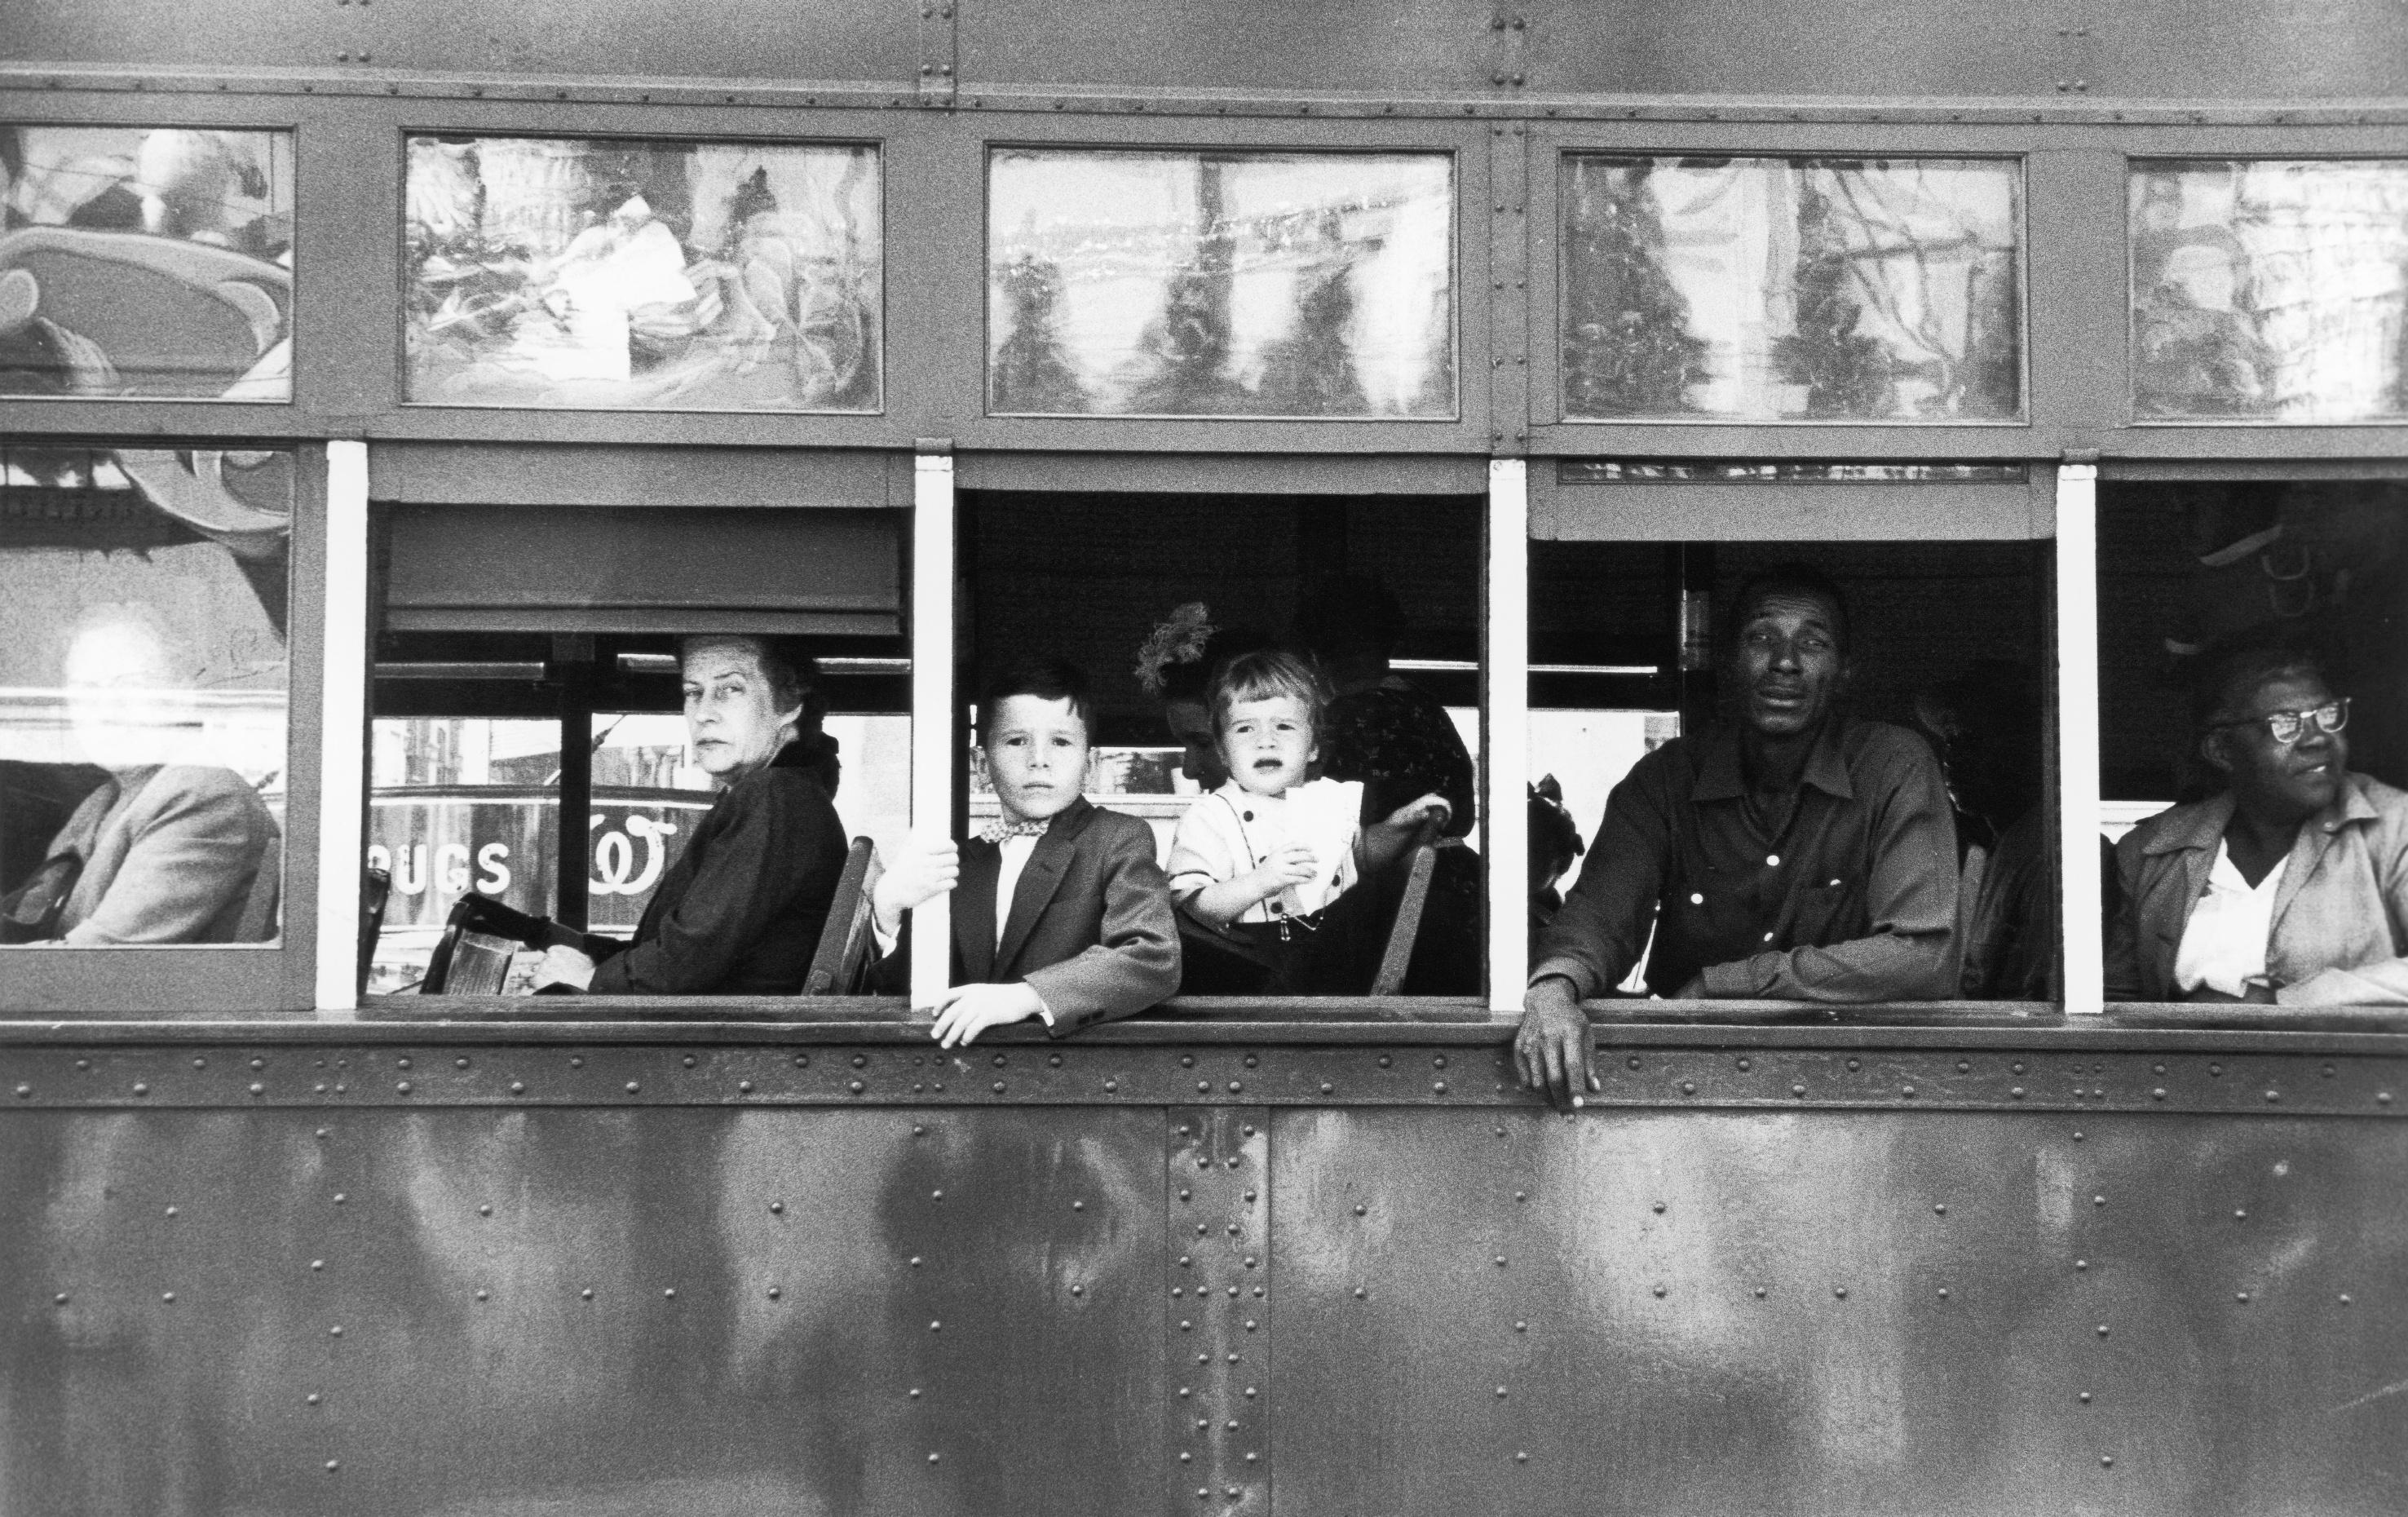 Robert Frank, revolutionary American photographer, dies aged 94